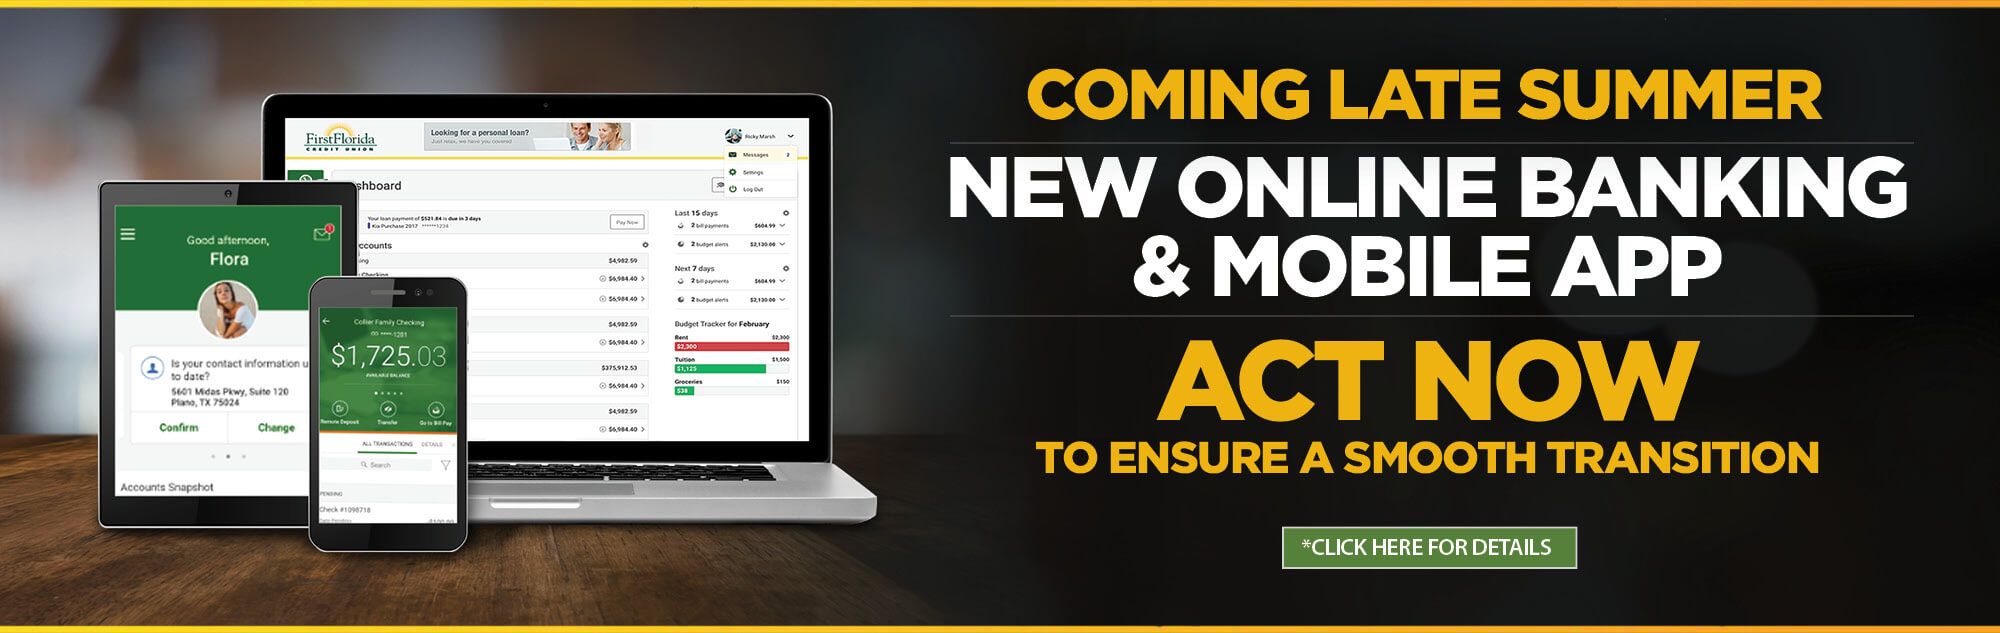 Coming late summer, new online banking and mobile app. Act now to ensure a smooth transition. Click here for details. Image